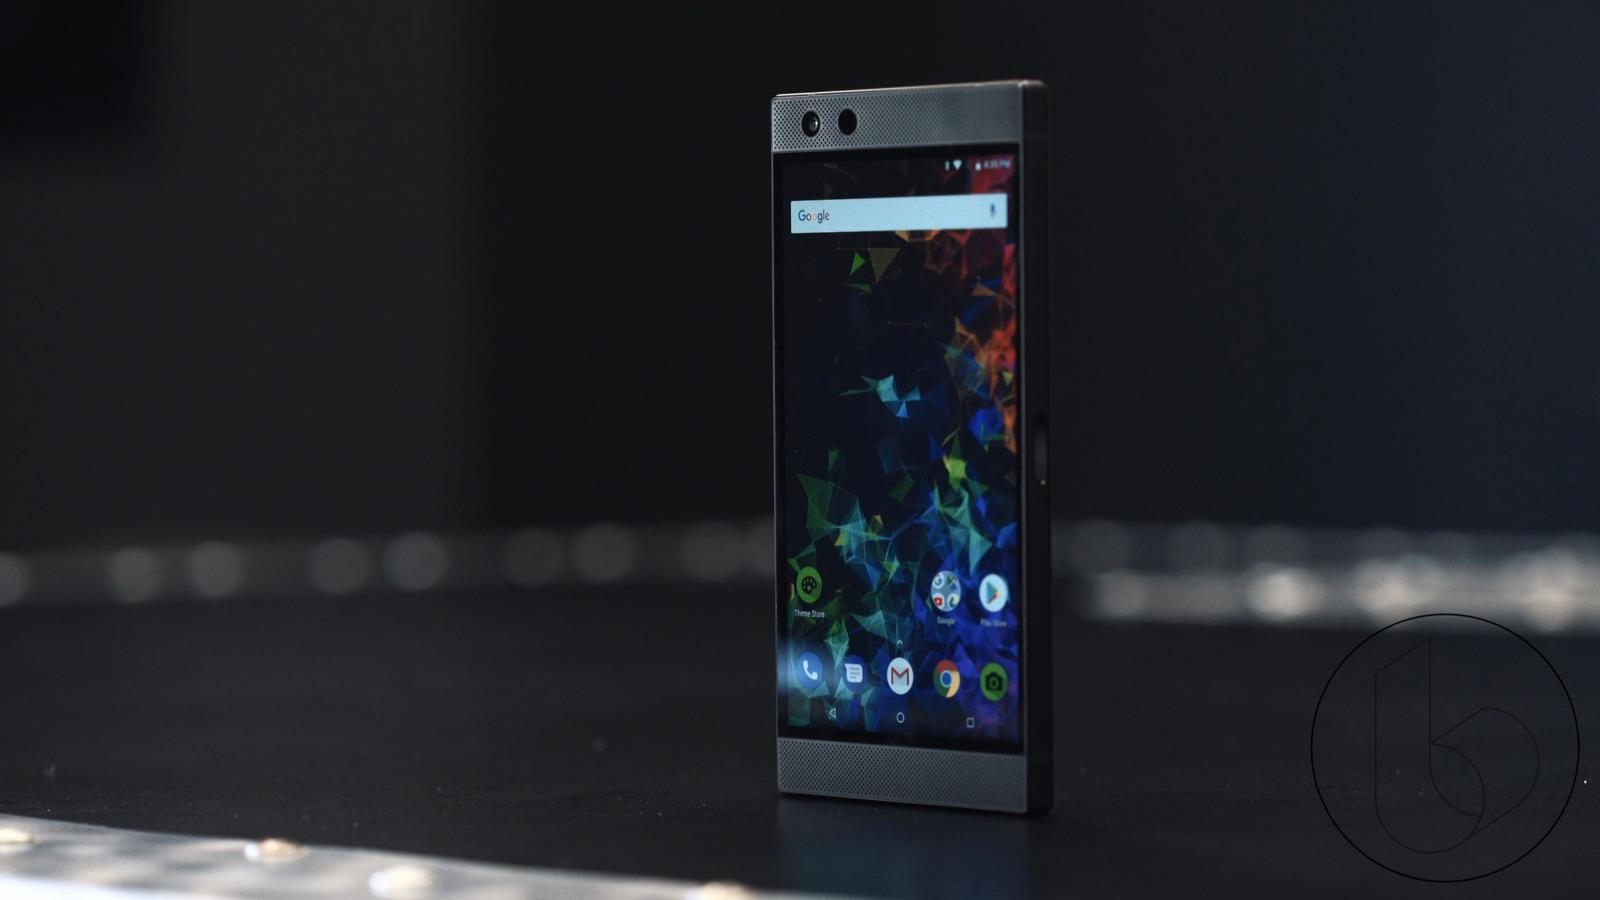 Razer Phone 2 review: When Glowing Changes Are Not Enough